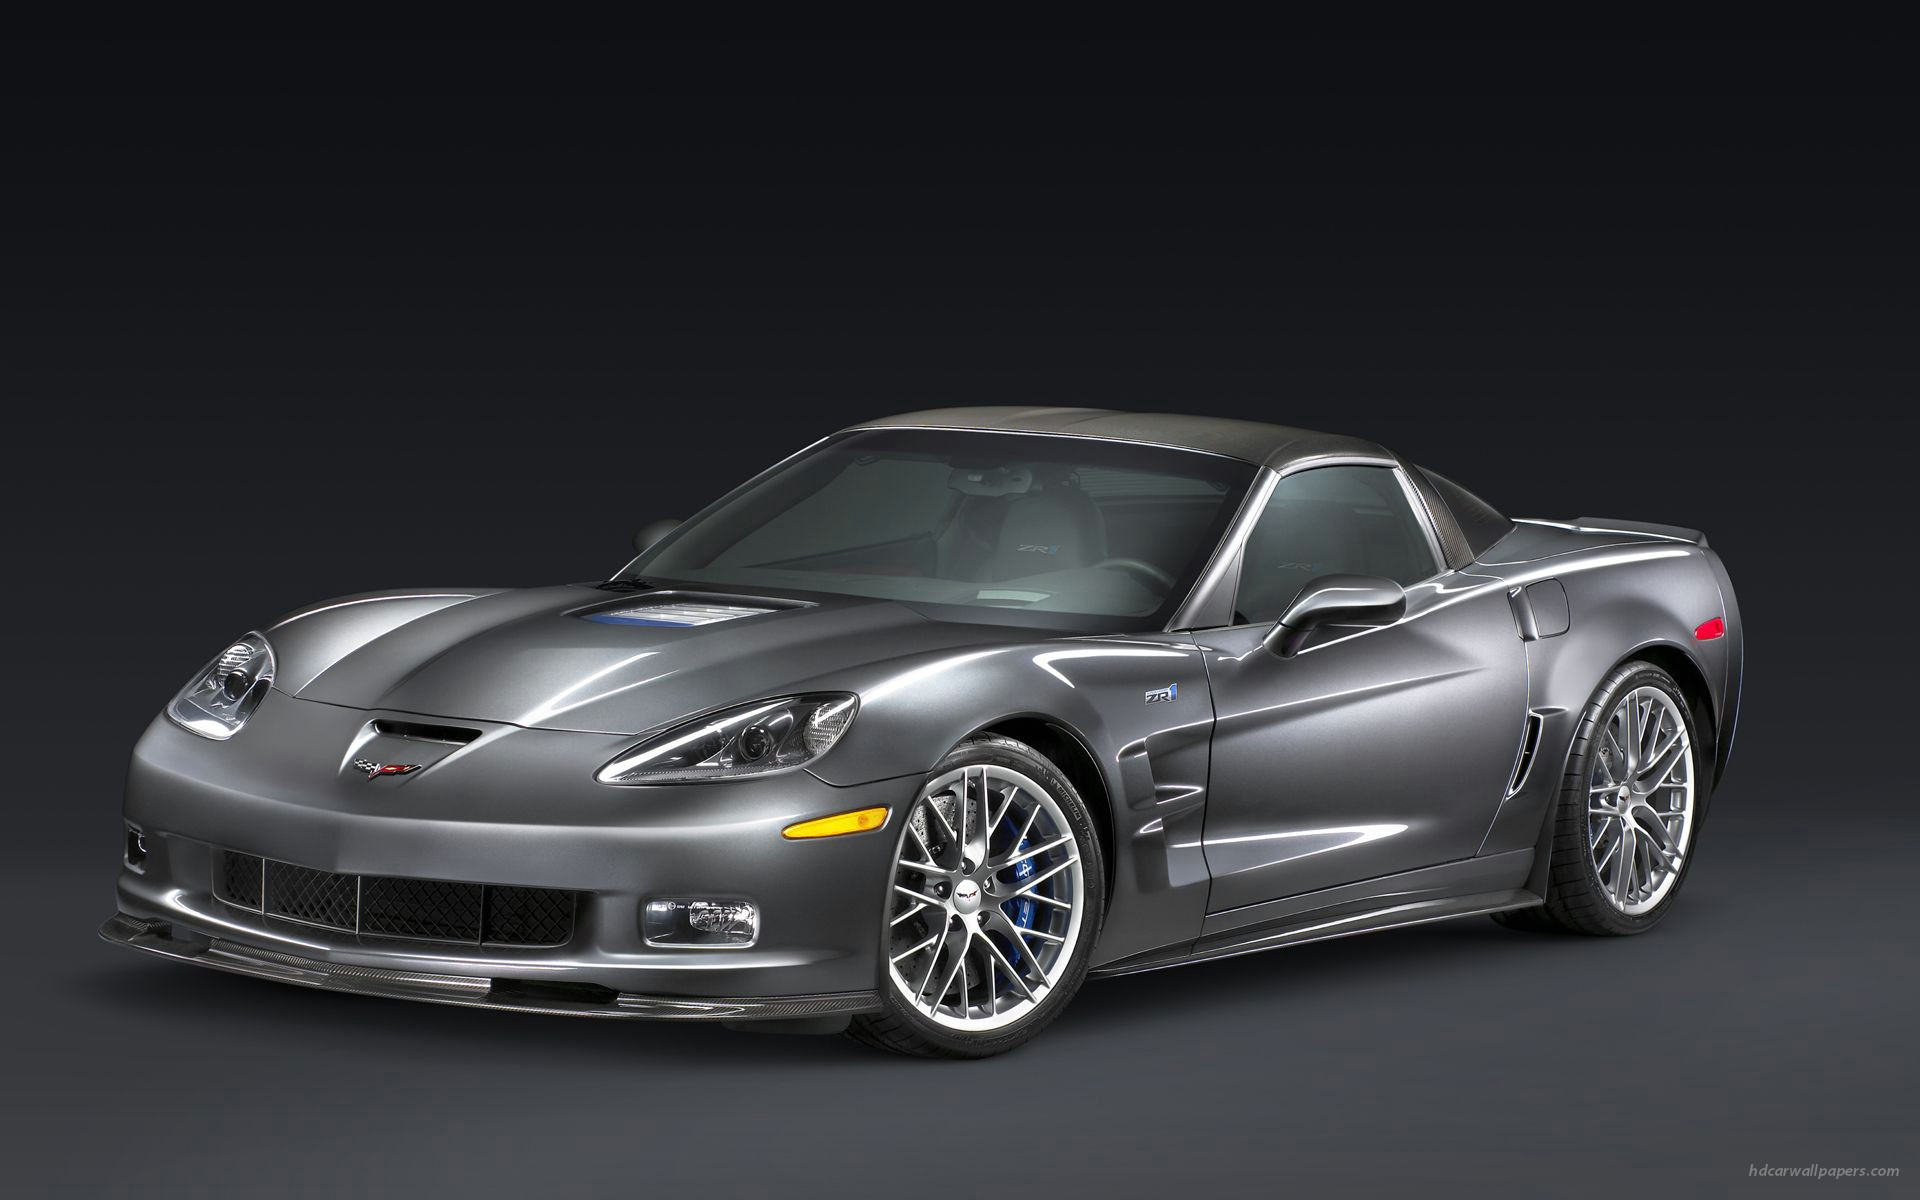 2009 Chevrolet Corvette ZR1 3 846.52 Kb